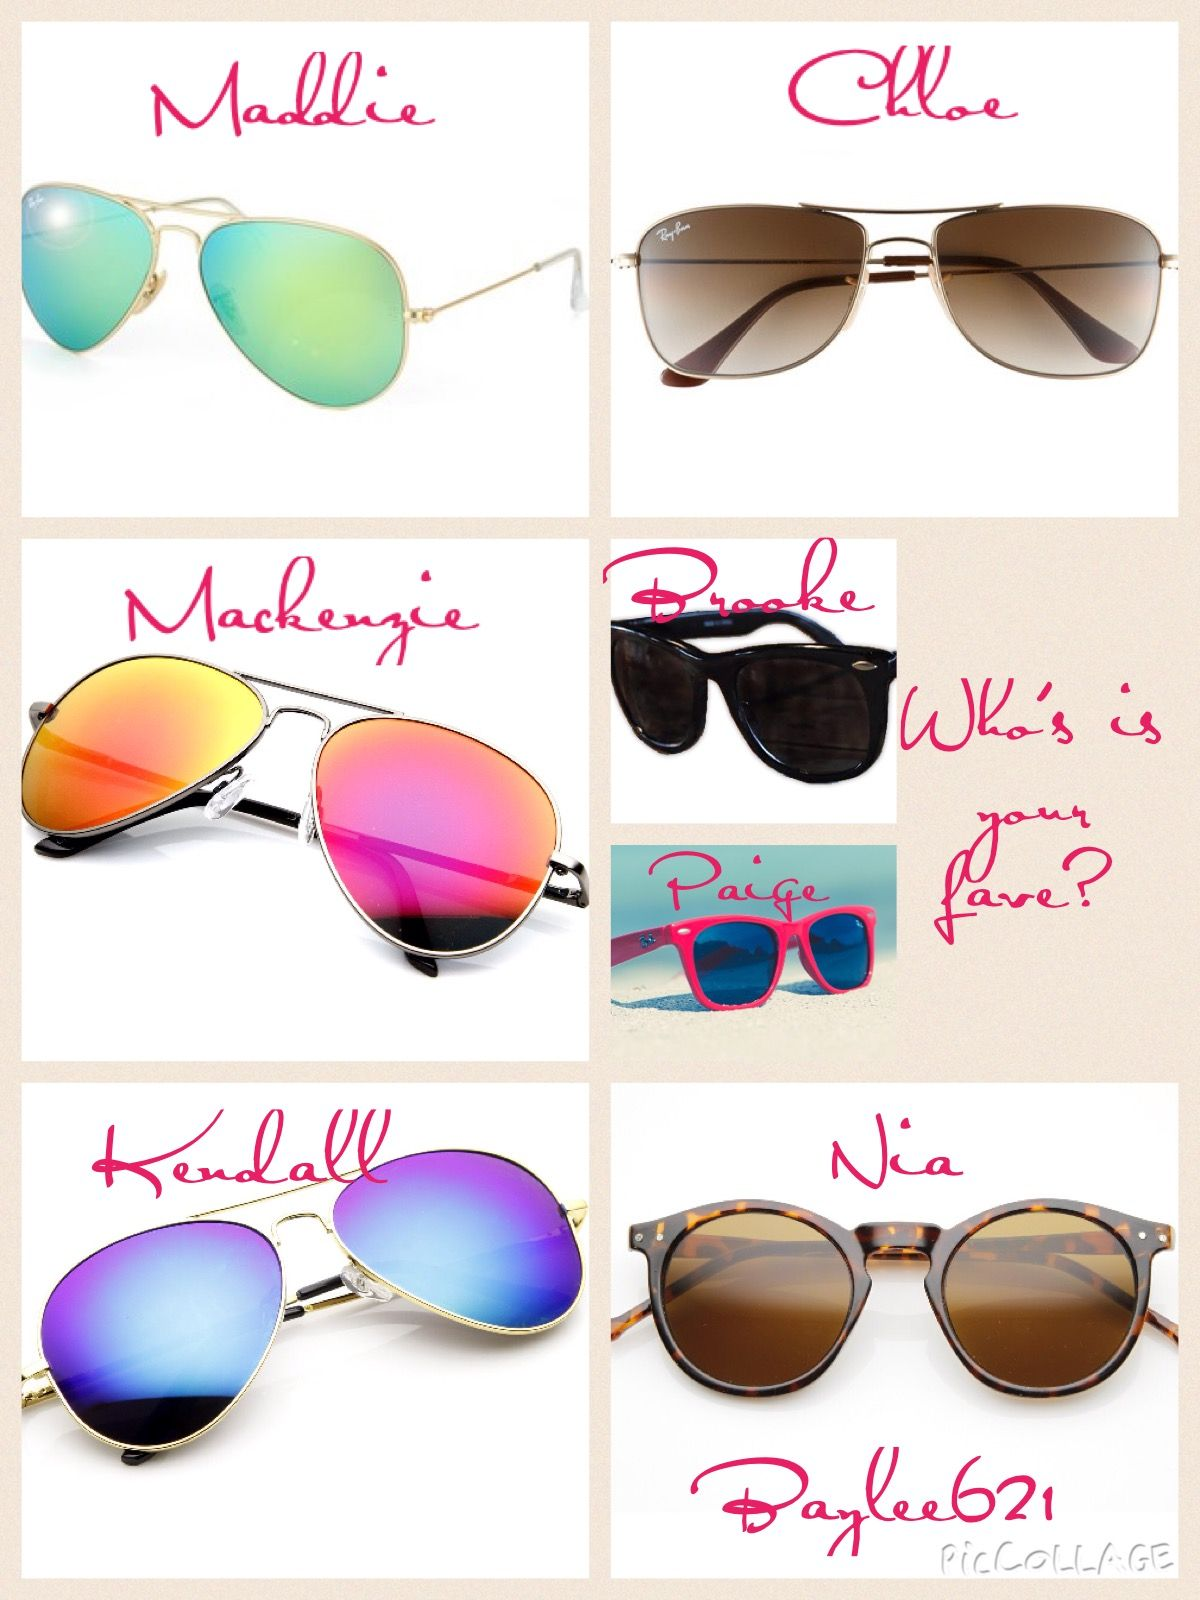 Comment down which one of their sunglasses is your fave. ALL CREDIT goes to Baylee621!